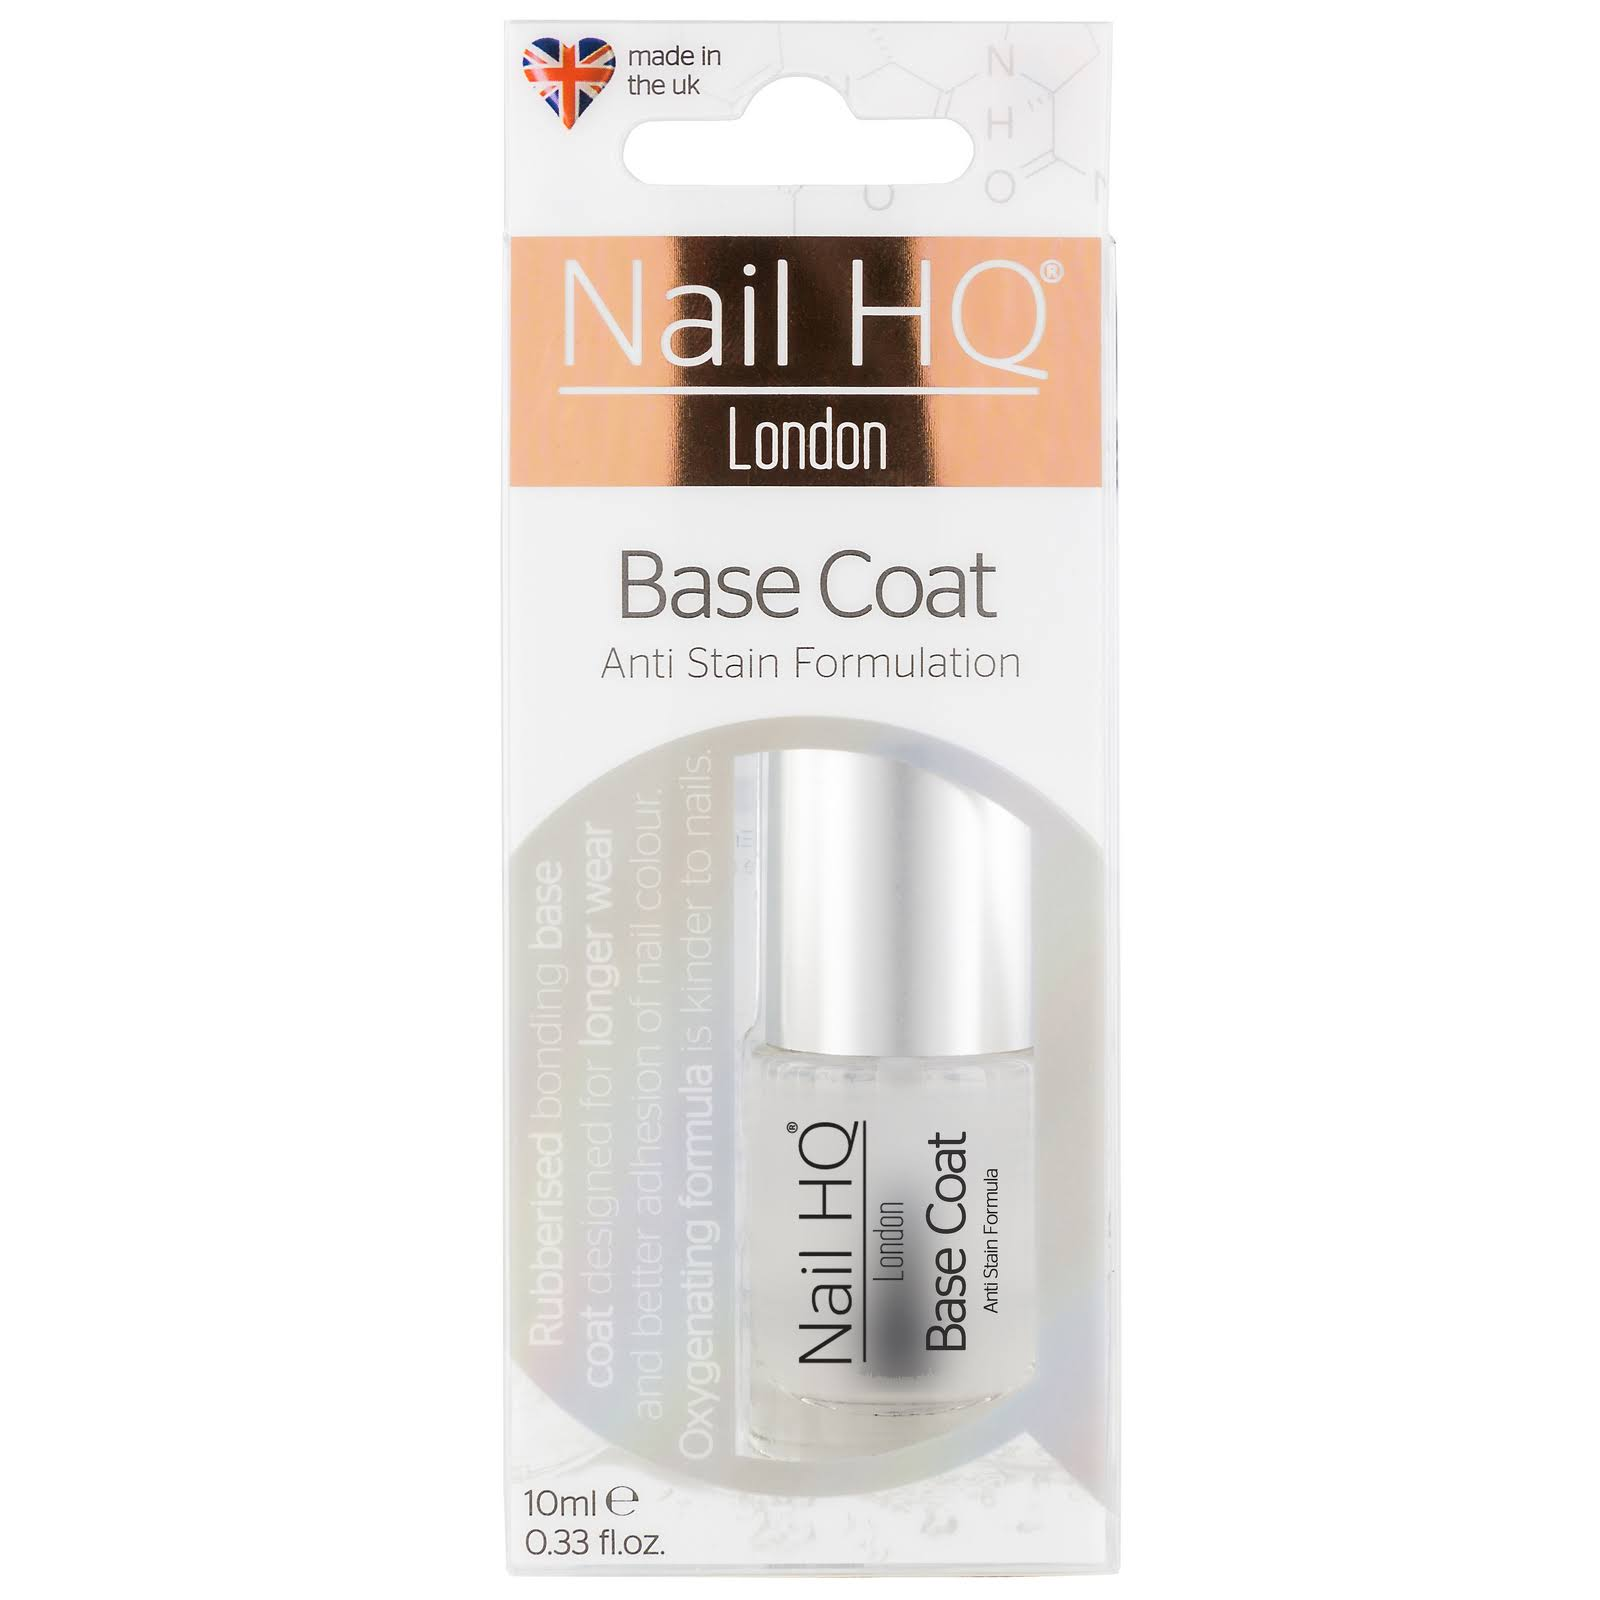 Nail HQ Base Coat - 10ml